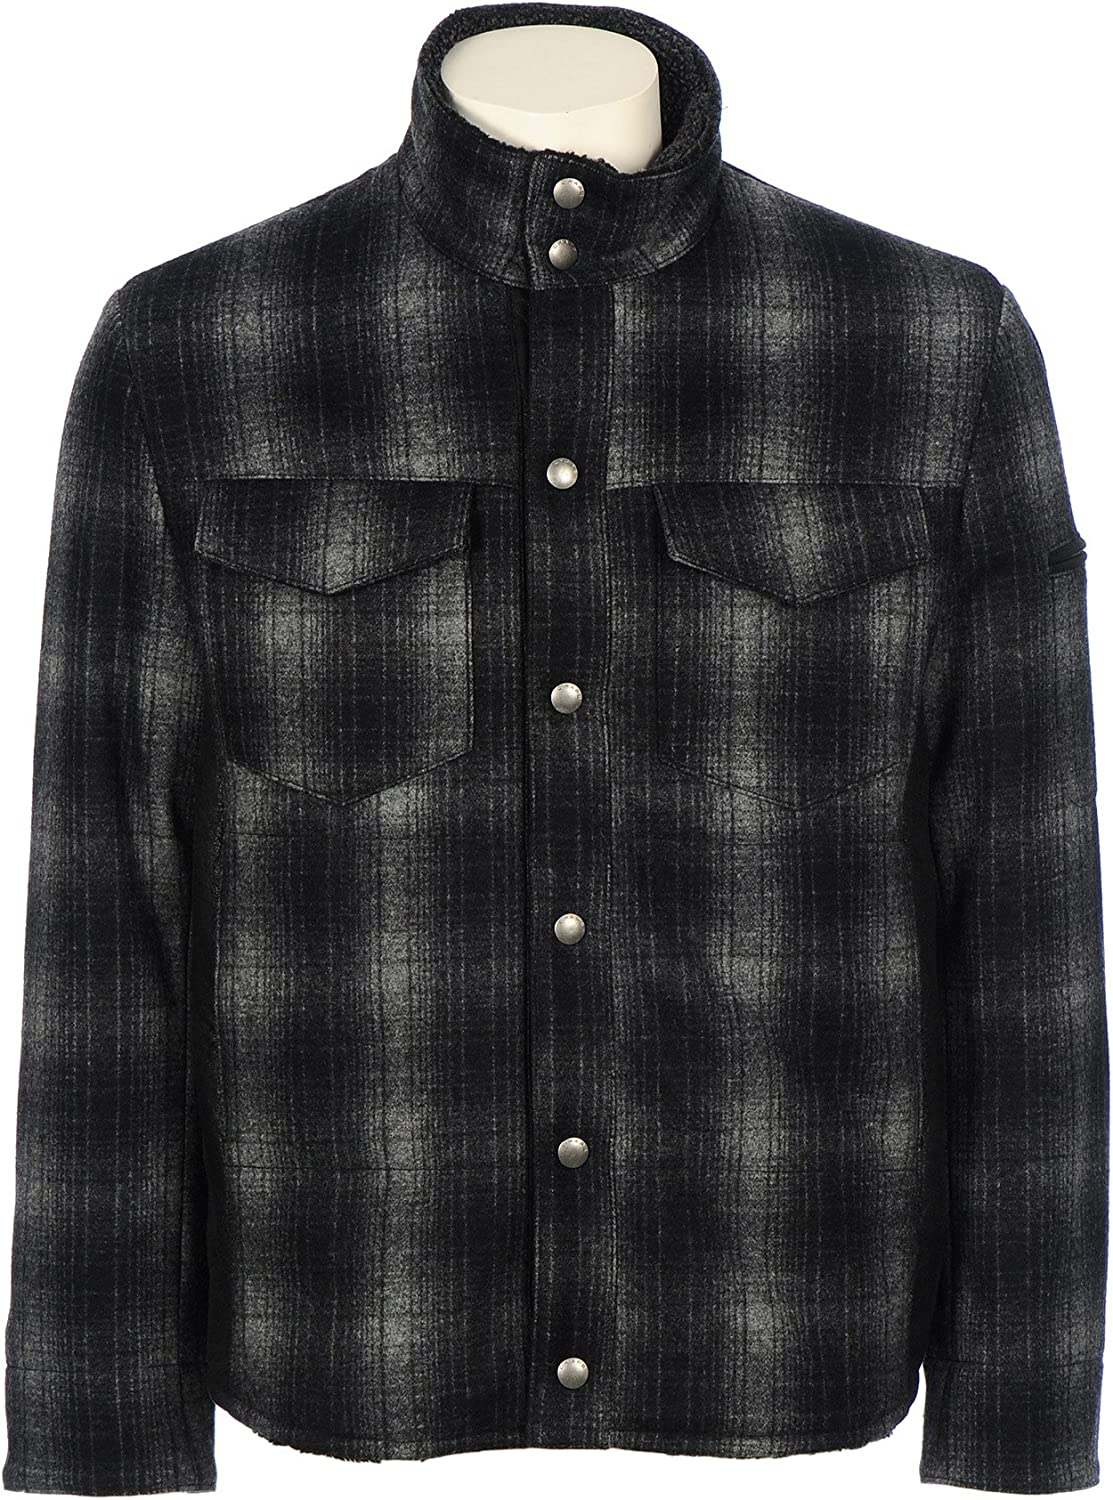 Men's Chaps Wool Plaid Jacket with Faux Shearling Inserts, GREY PLAID, M